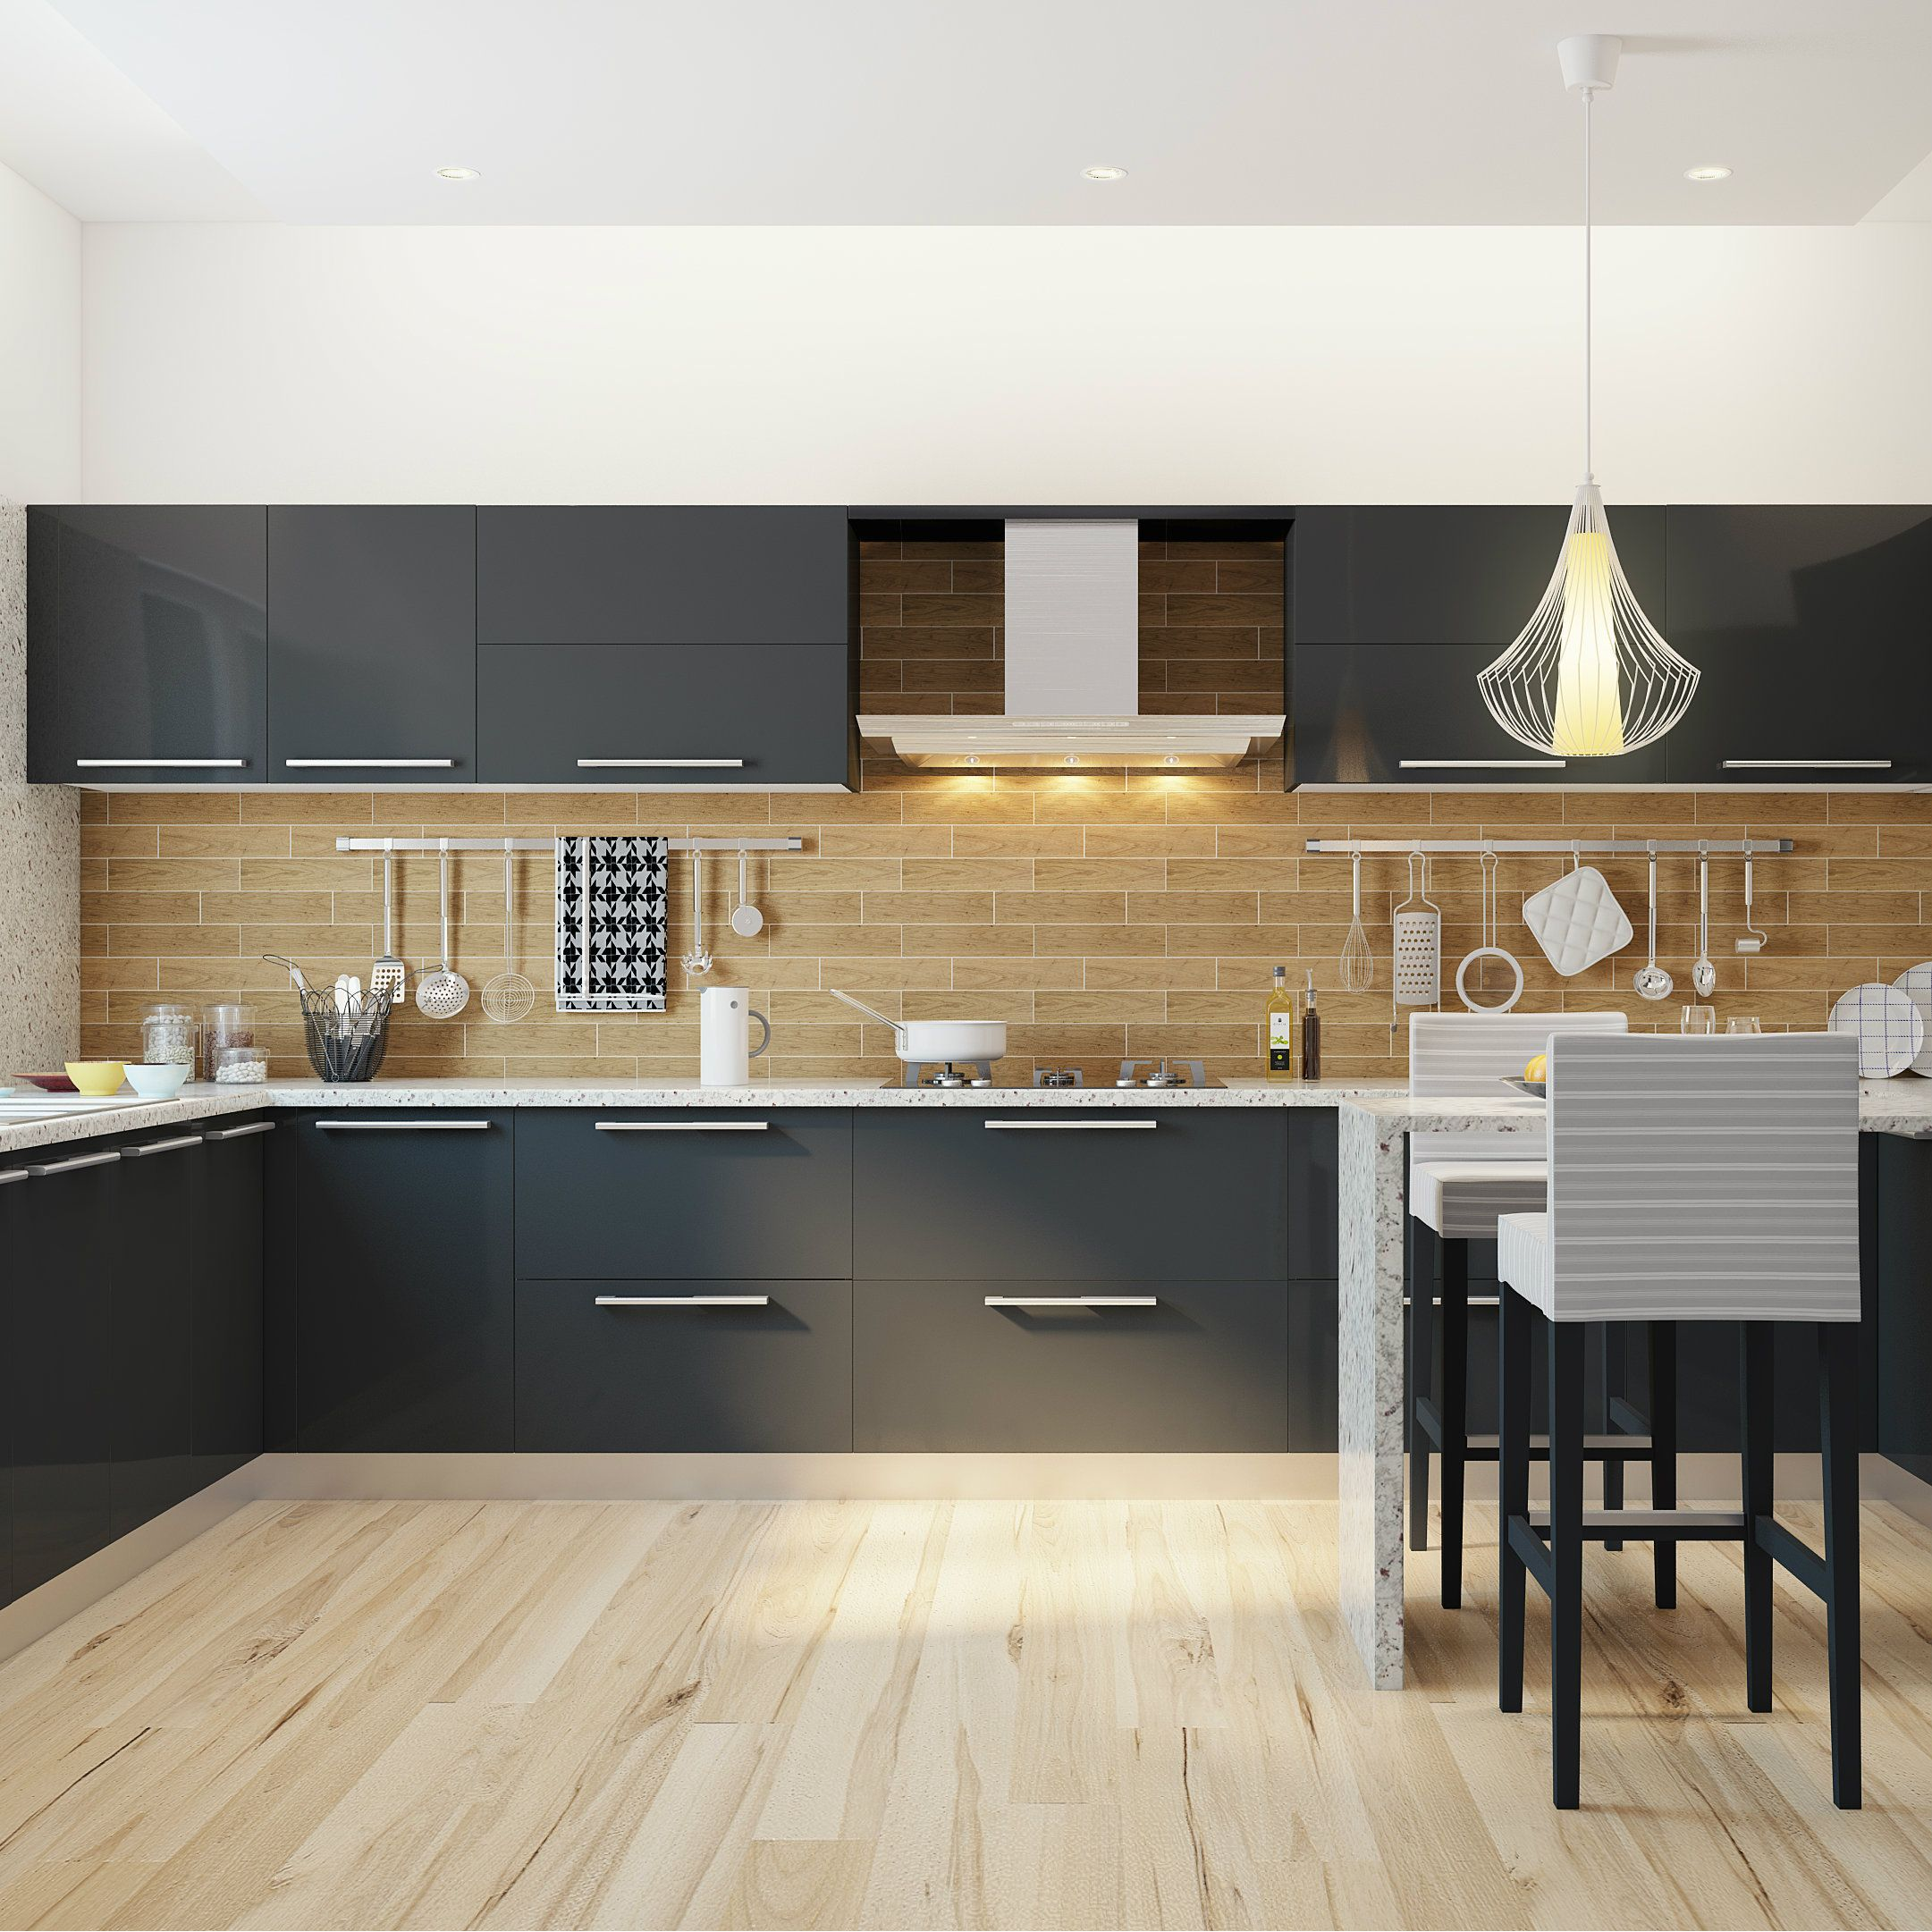 Sprawling Modular Kitchen With A Breakfast Counter Perfect For Modern Indian Homes Kitchen Modular Modern Kitchen Design Modular Kitchen Design